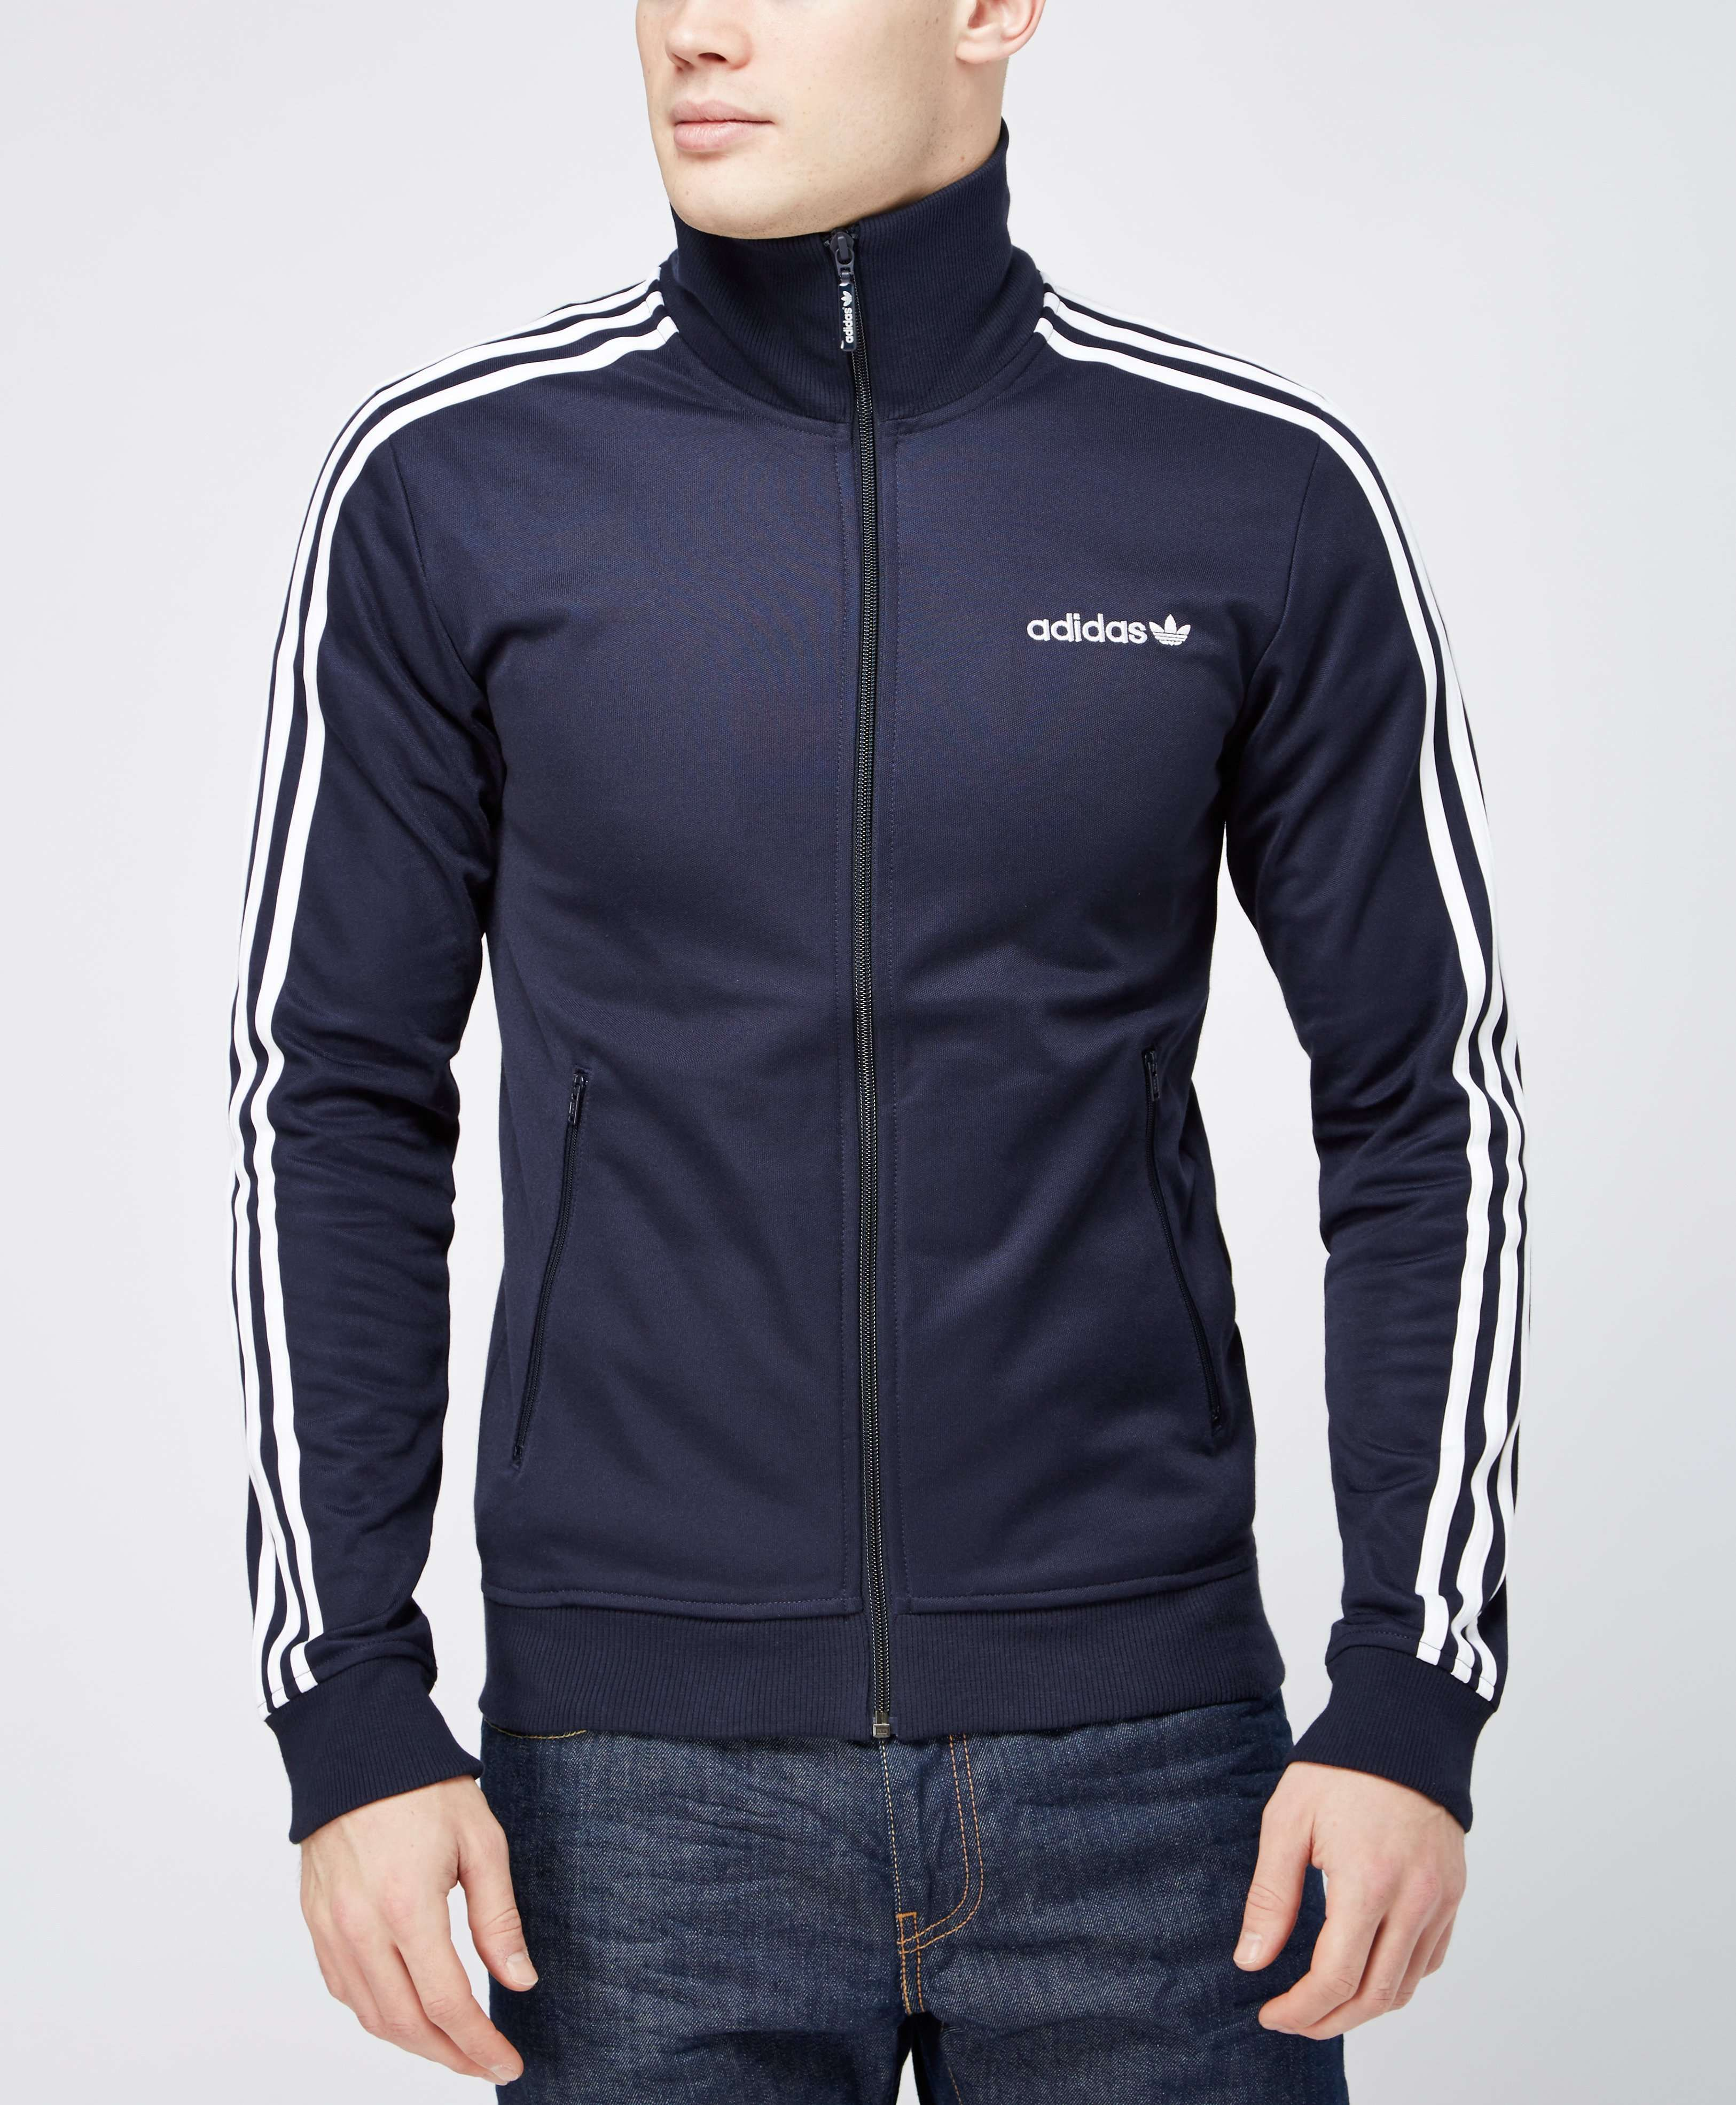 4e044876 adidas Originals Beckenbauer Track Jacket - The Brand Authority, scotts  Menswear, brings you the latest clothing, footwear and accessories from top  menswear ...